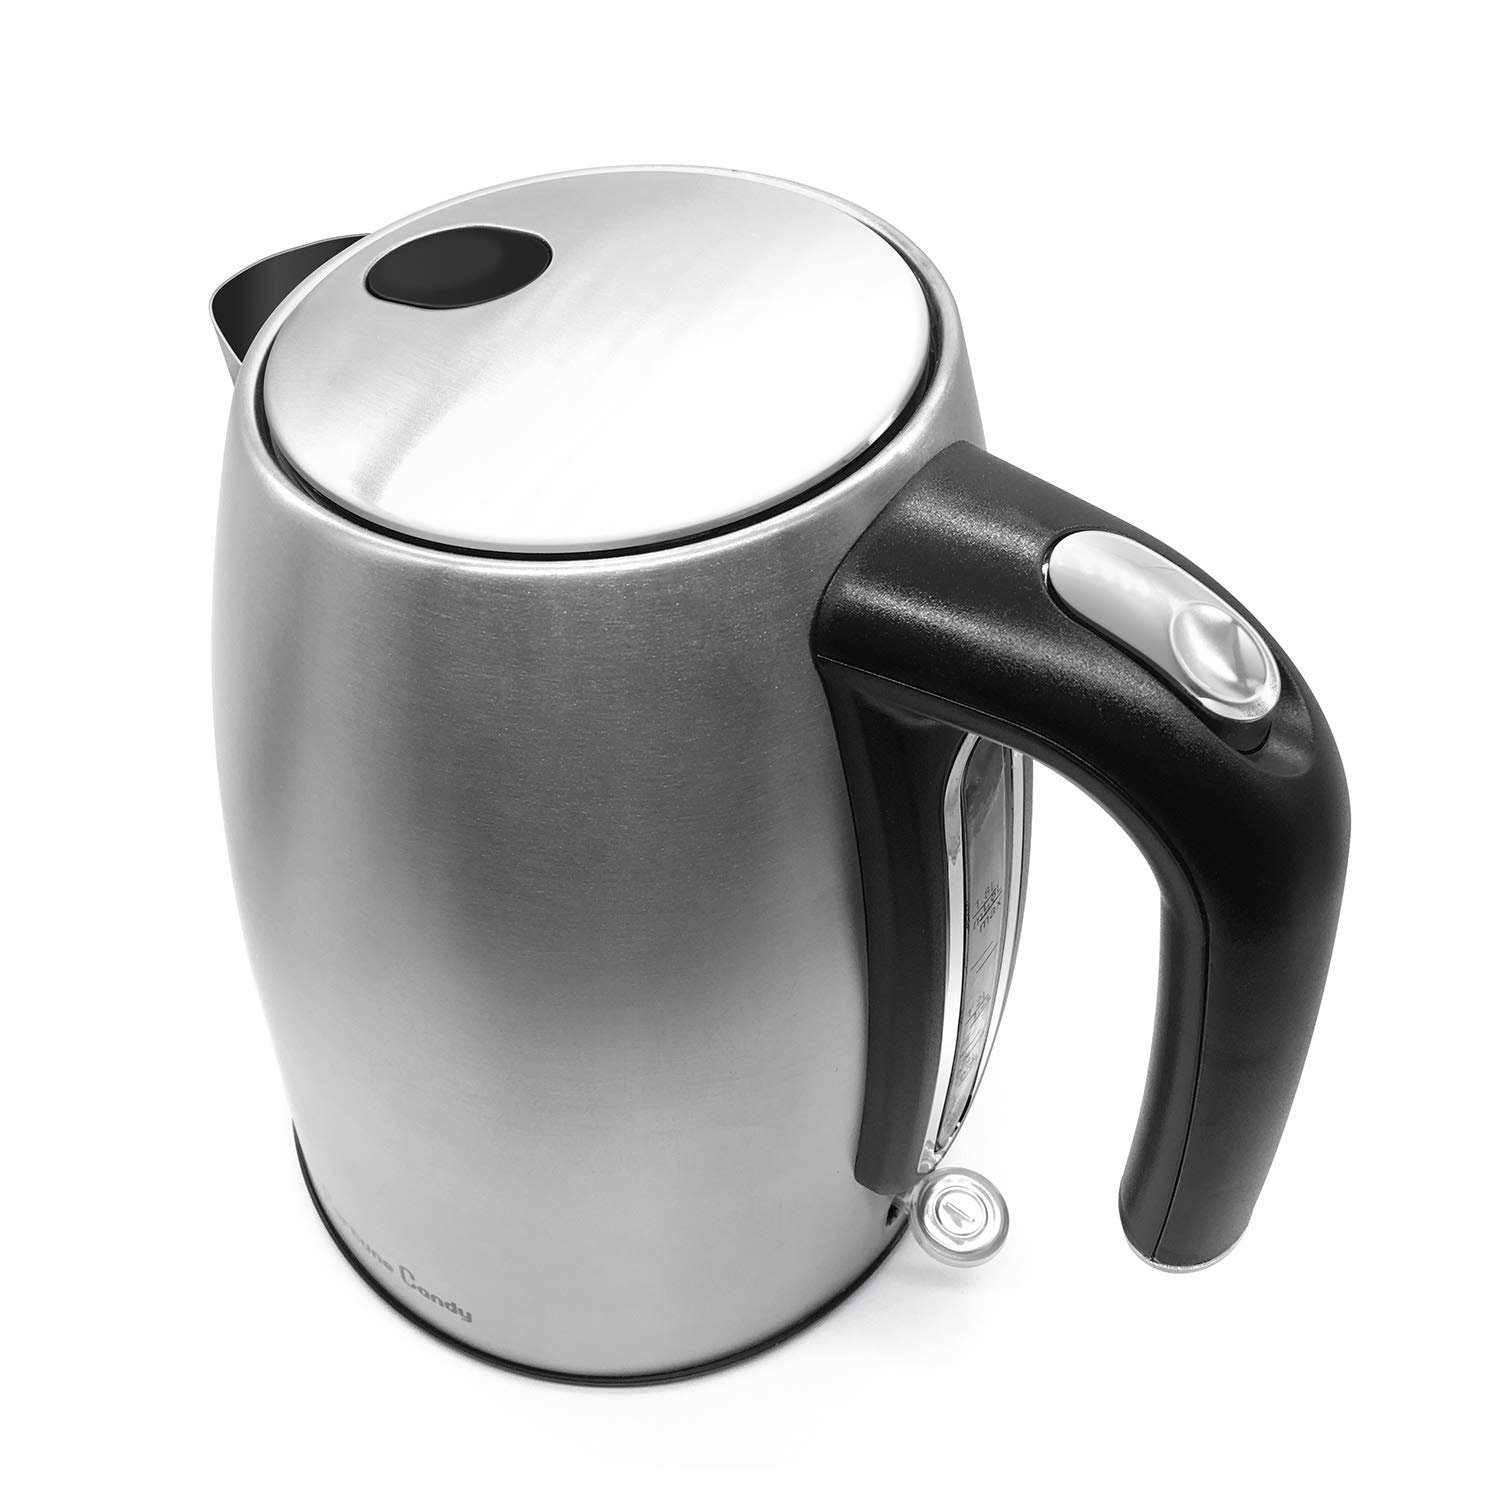 Fortune Candy KSK001 Stainless Steel Electric Hot Water Kettle - 1.8 Liter, Silver